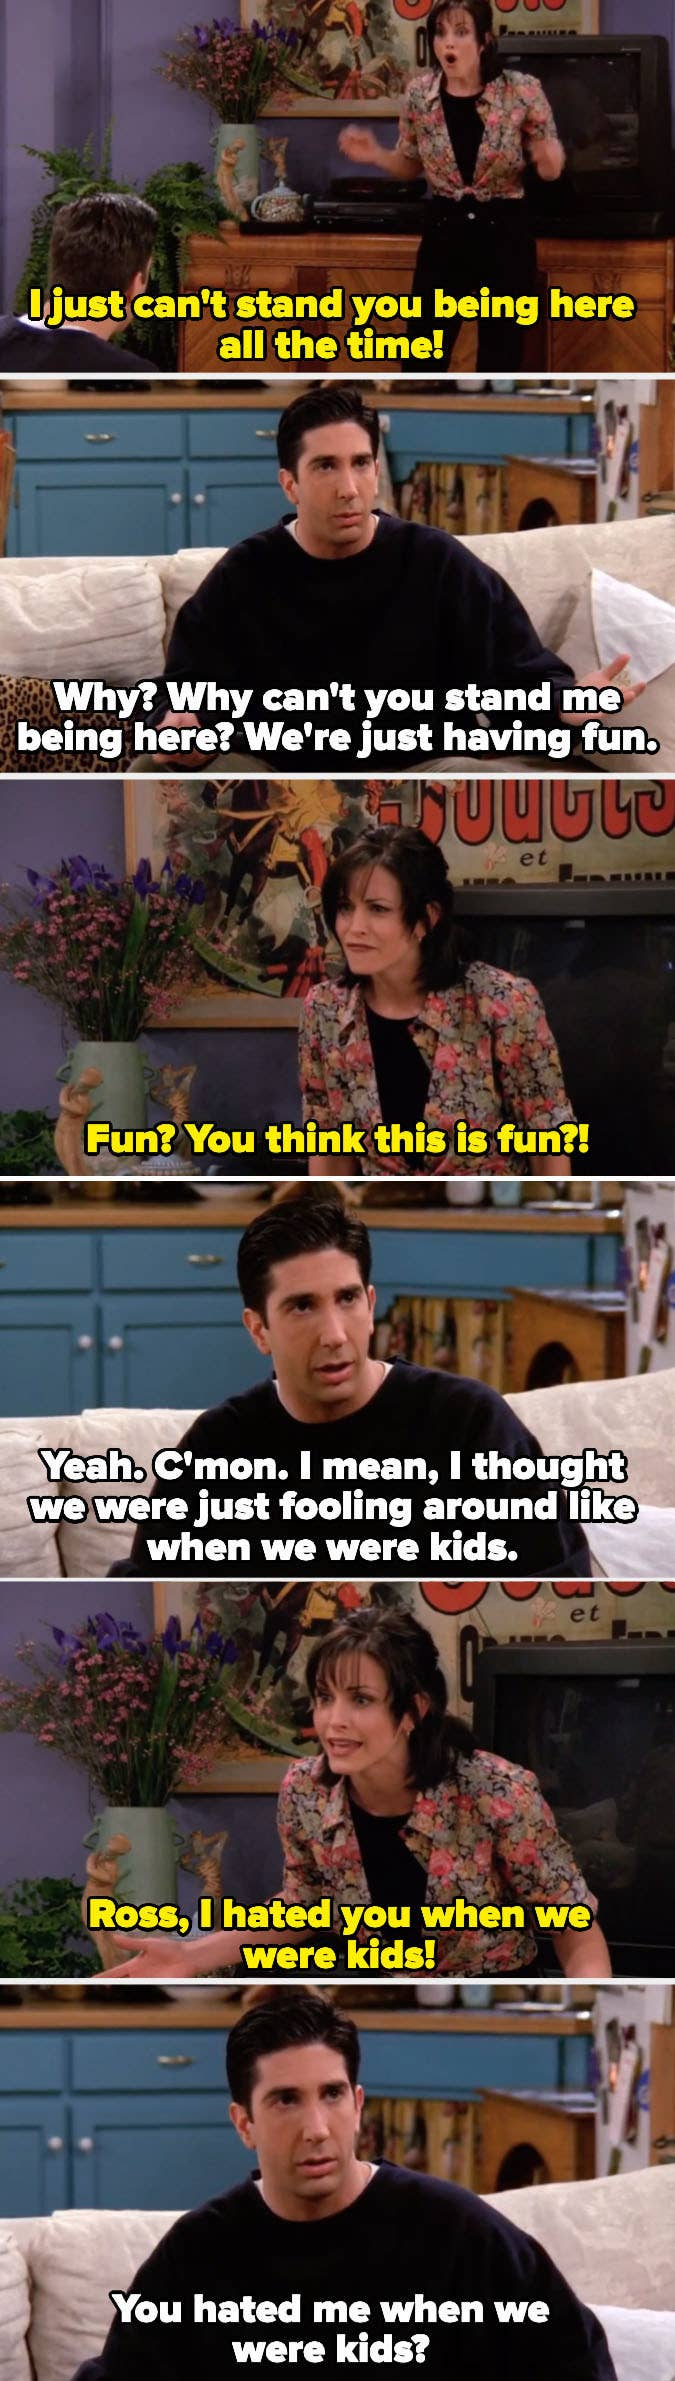 Monica telling Ross she hated him when they were kids